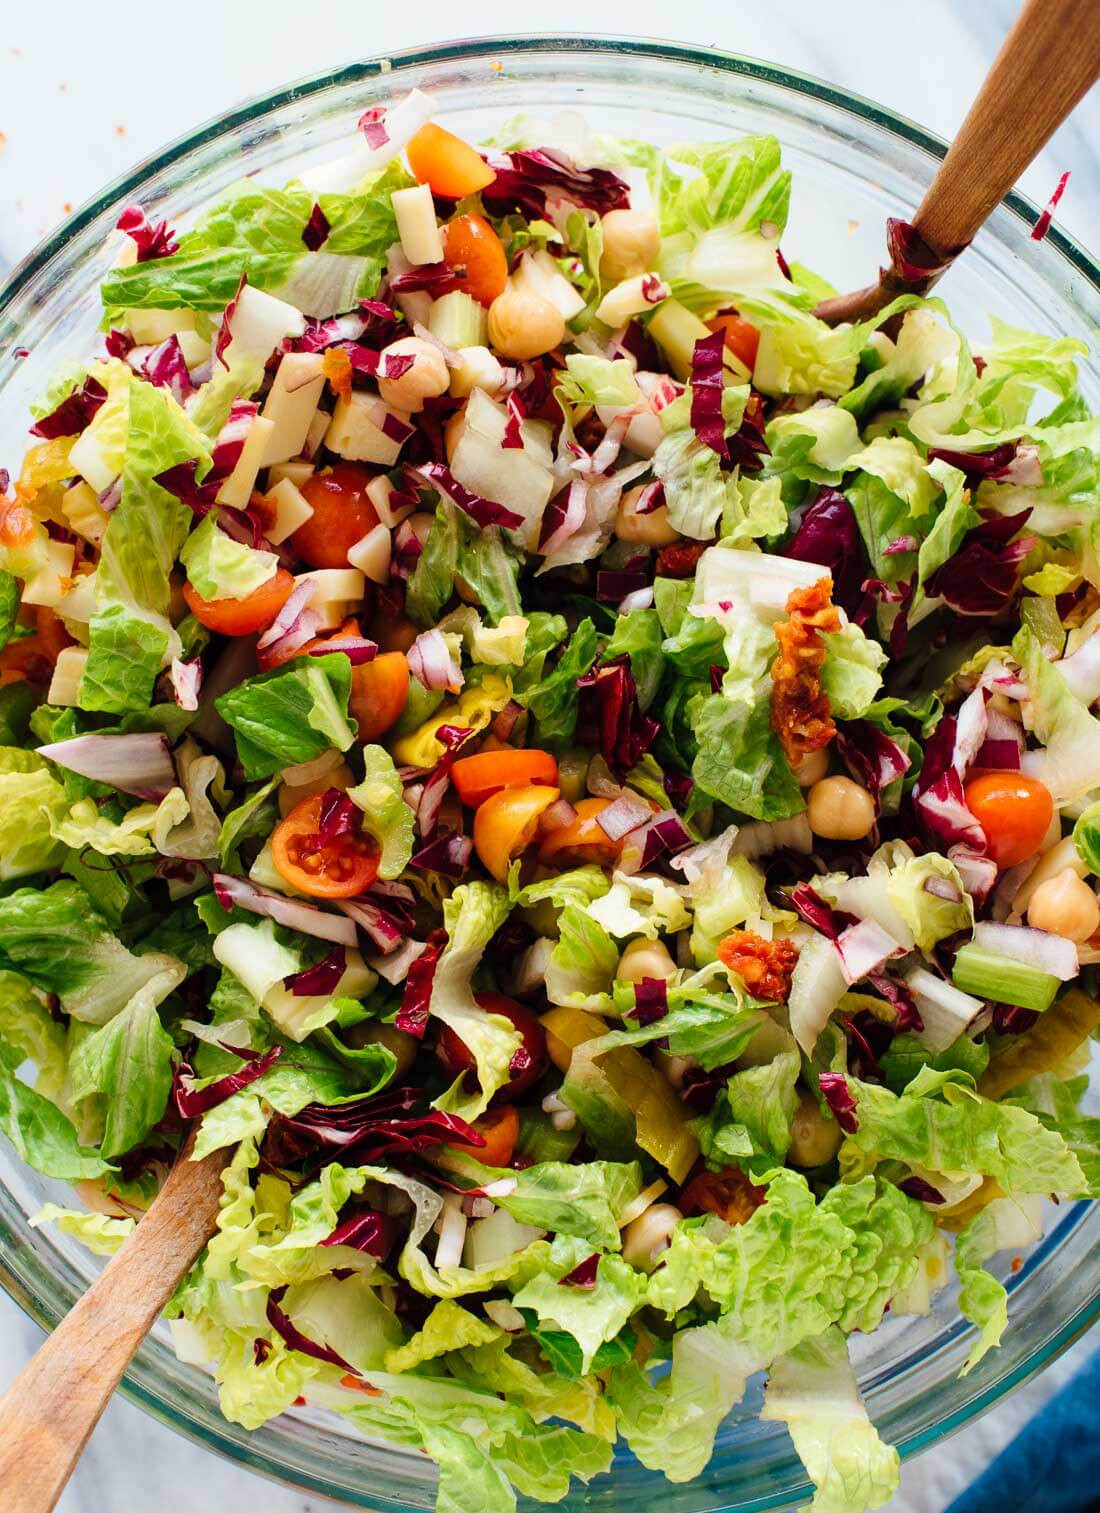 Healthy Vegetarian Salad Recipes  Ve arian Italian Chopped Salad Cookie and Kate